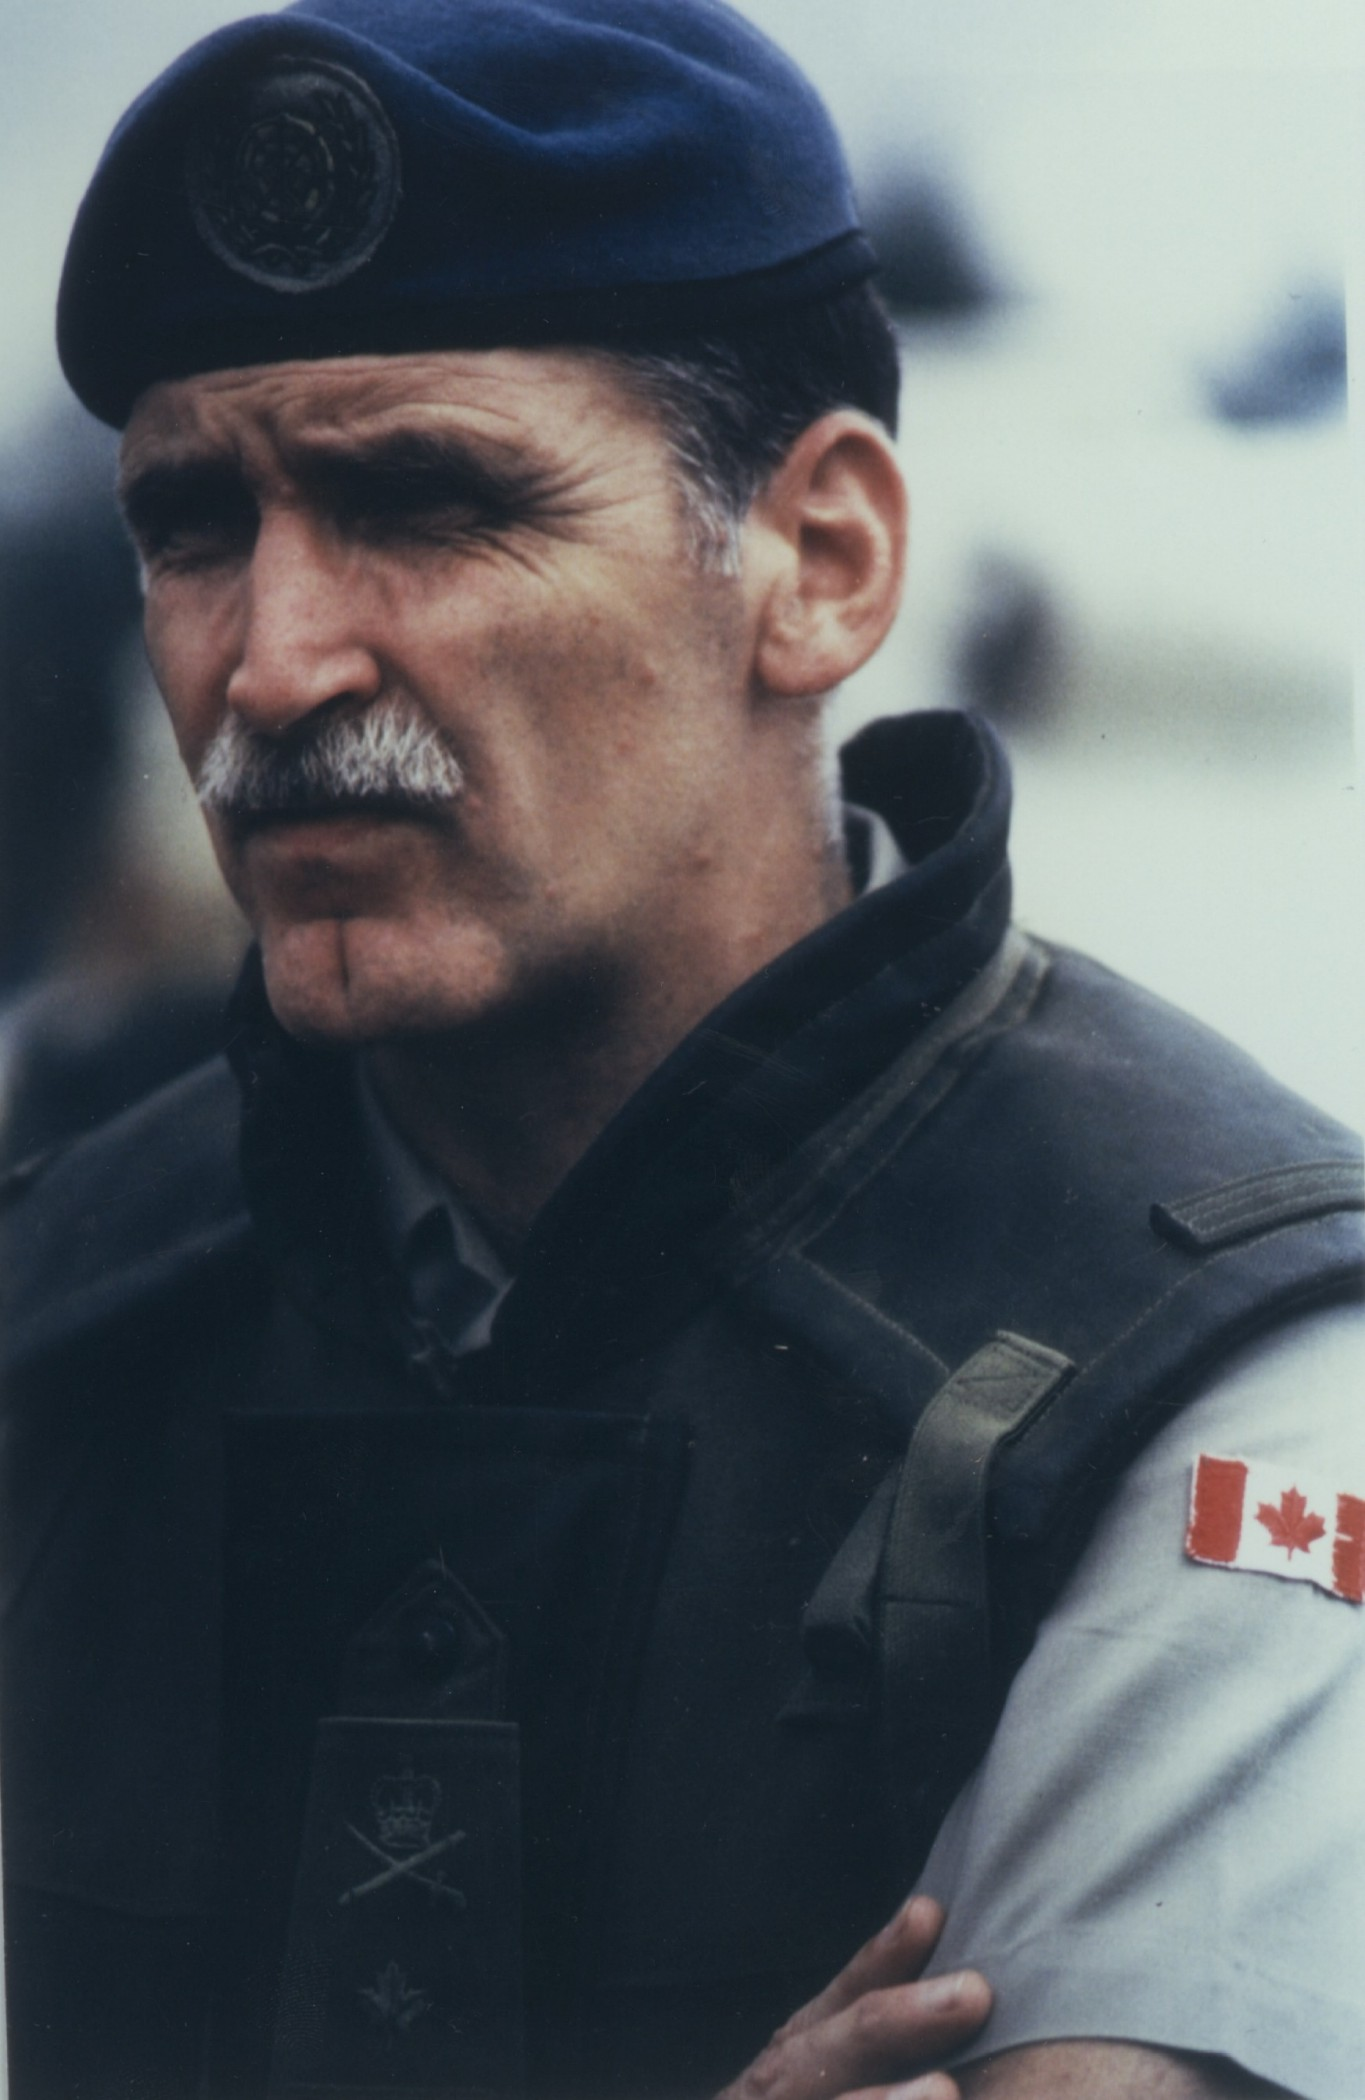 Romeo Dallaire's UN force stood against the genocide - but they were undermanned and underequipped.